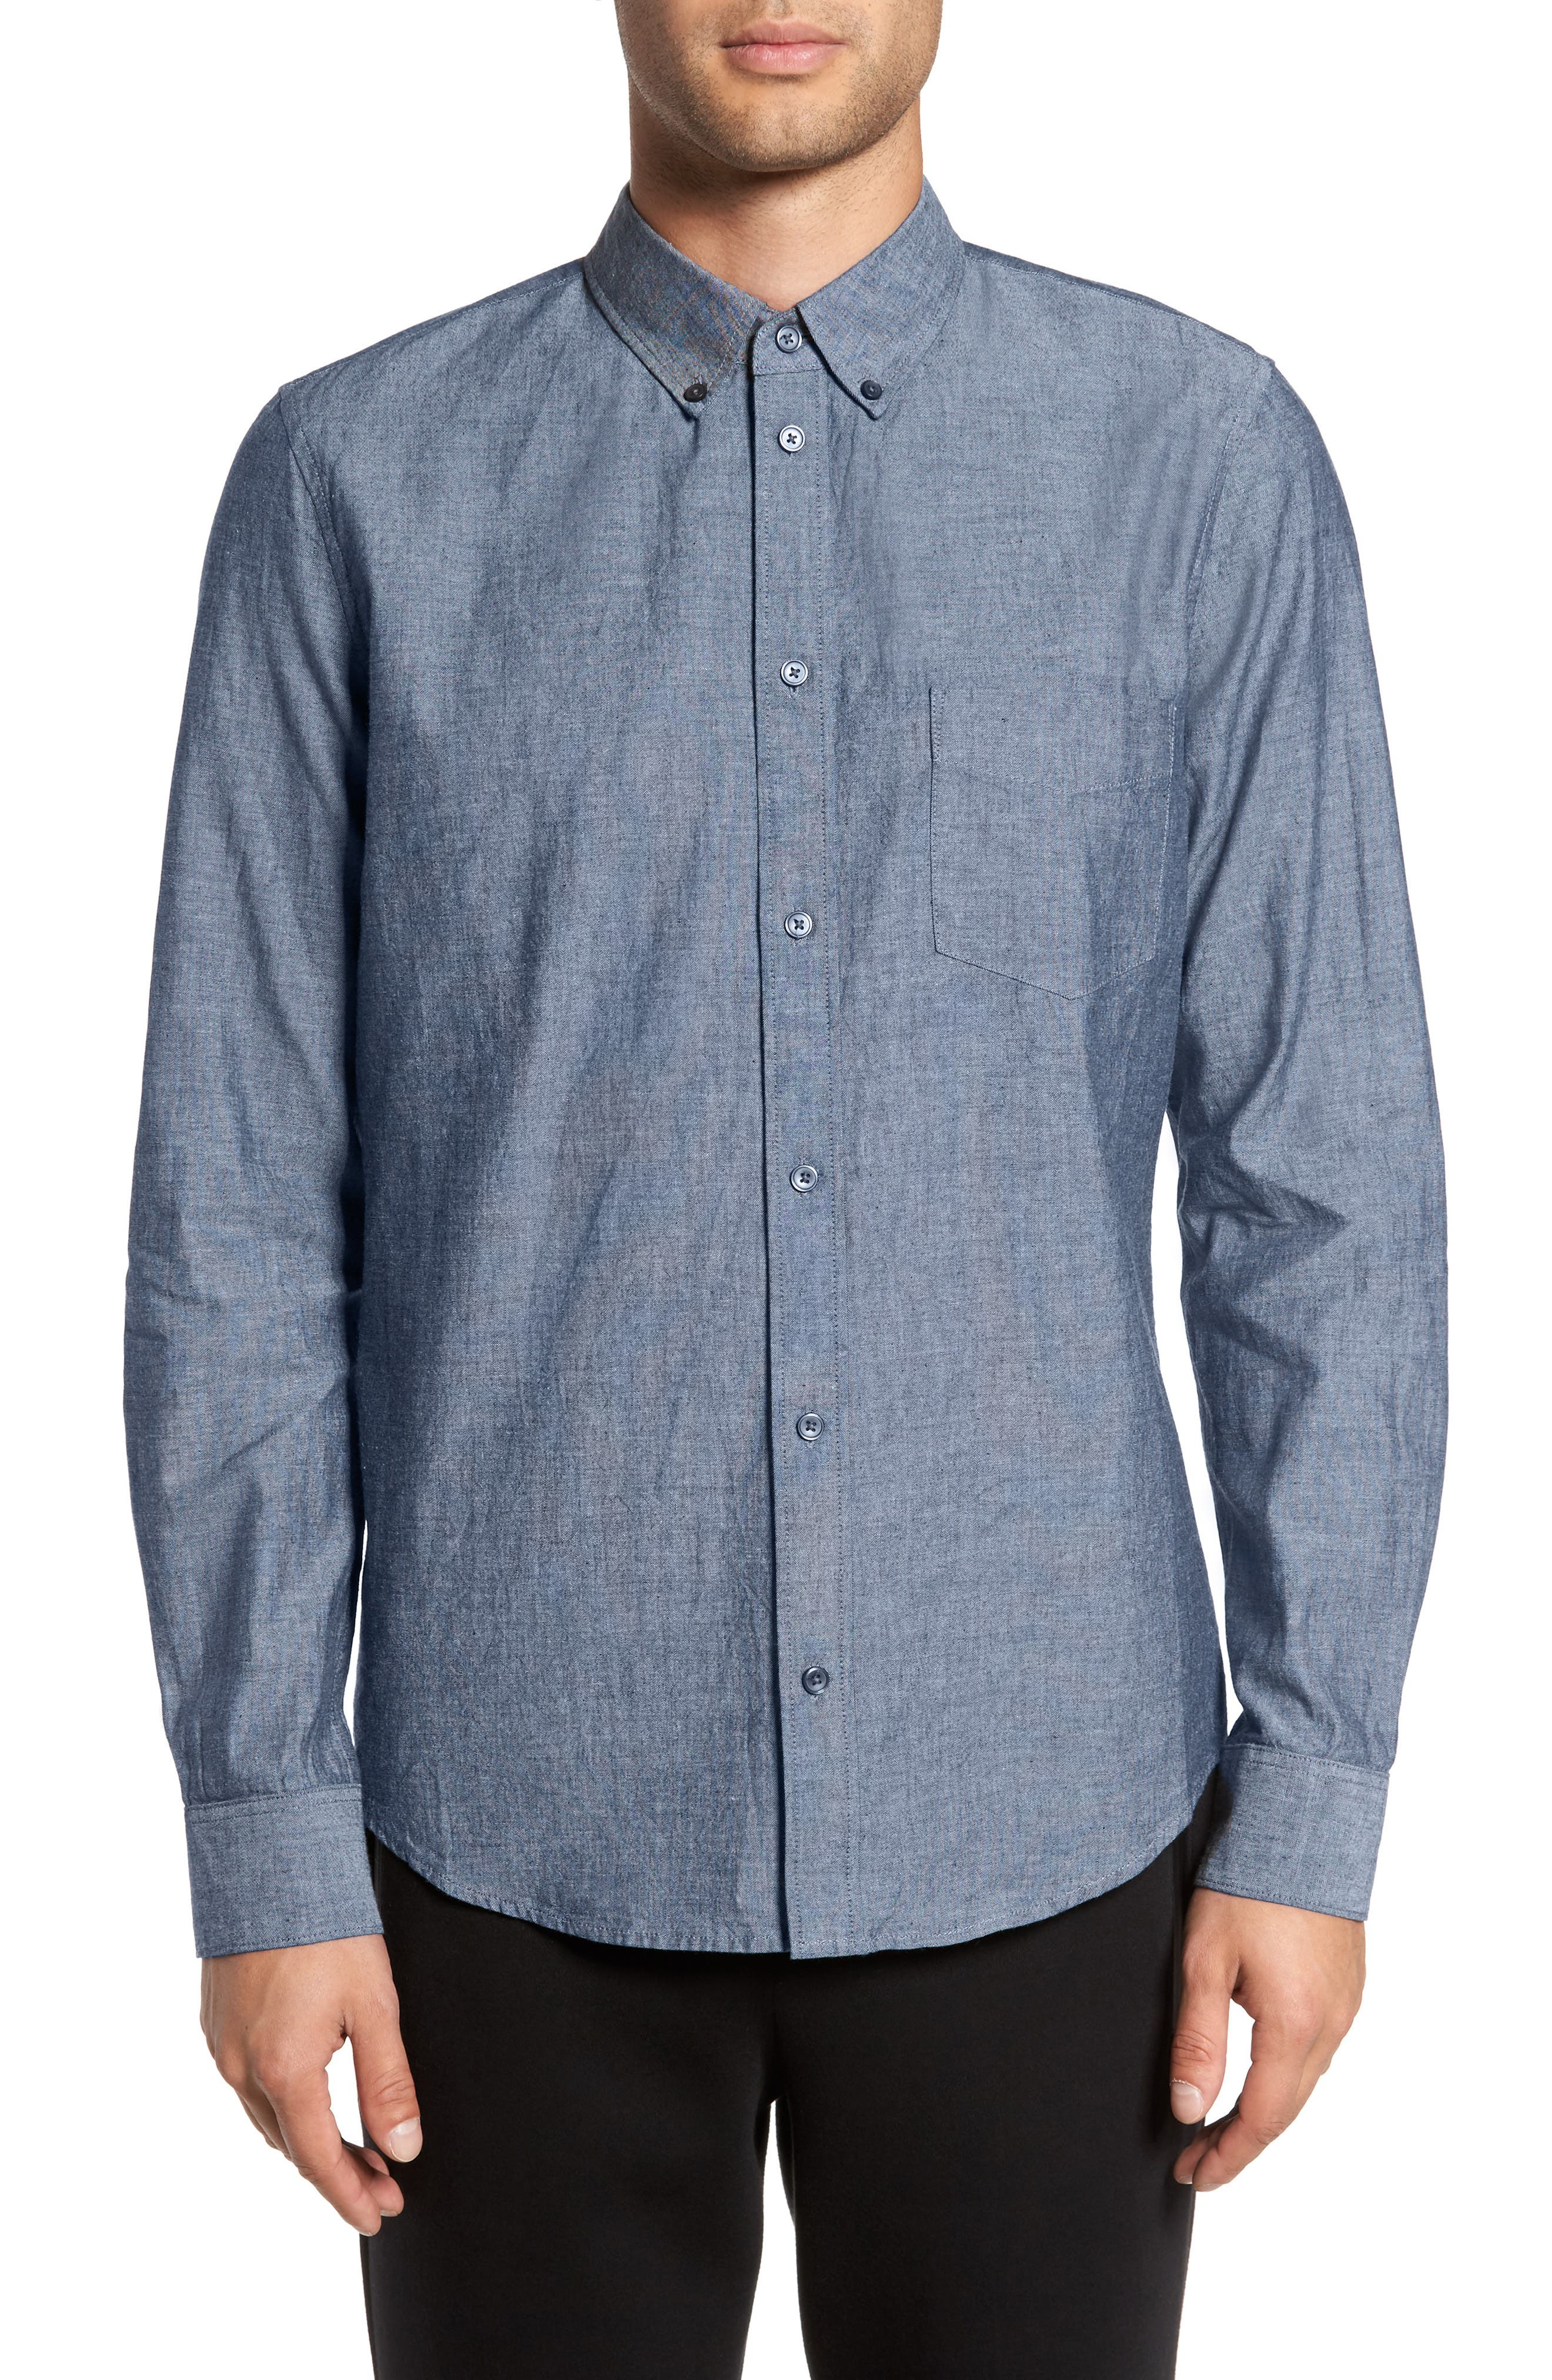 Alternate Image 1 Selected - Everlane The Slim Fit Chambray Shirt